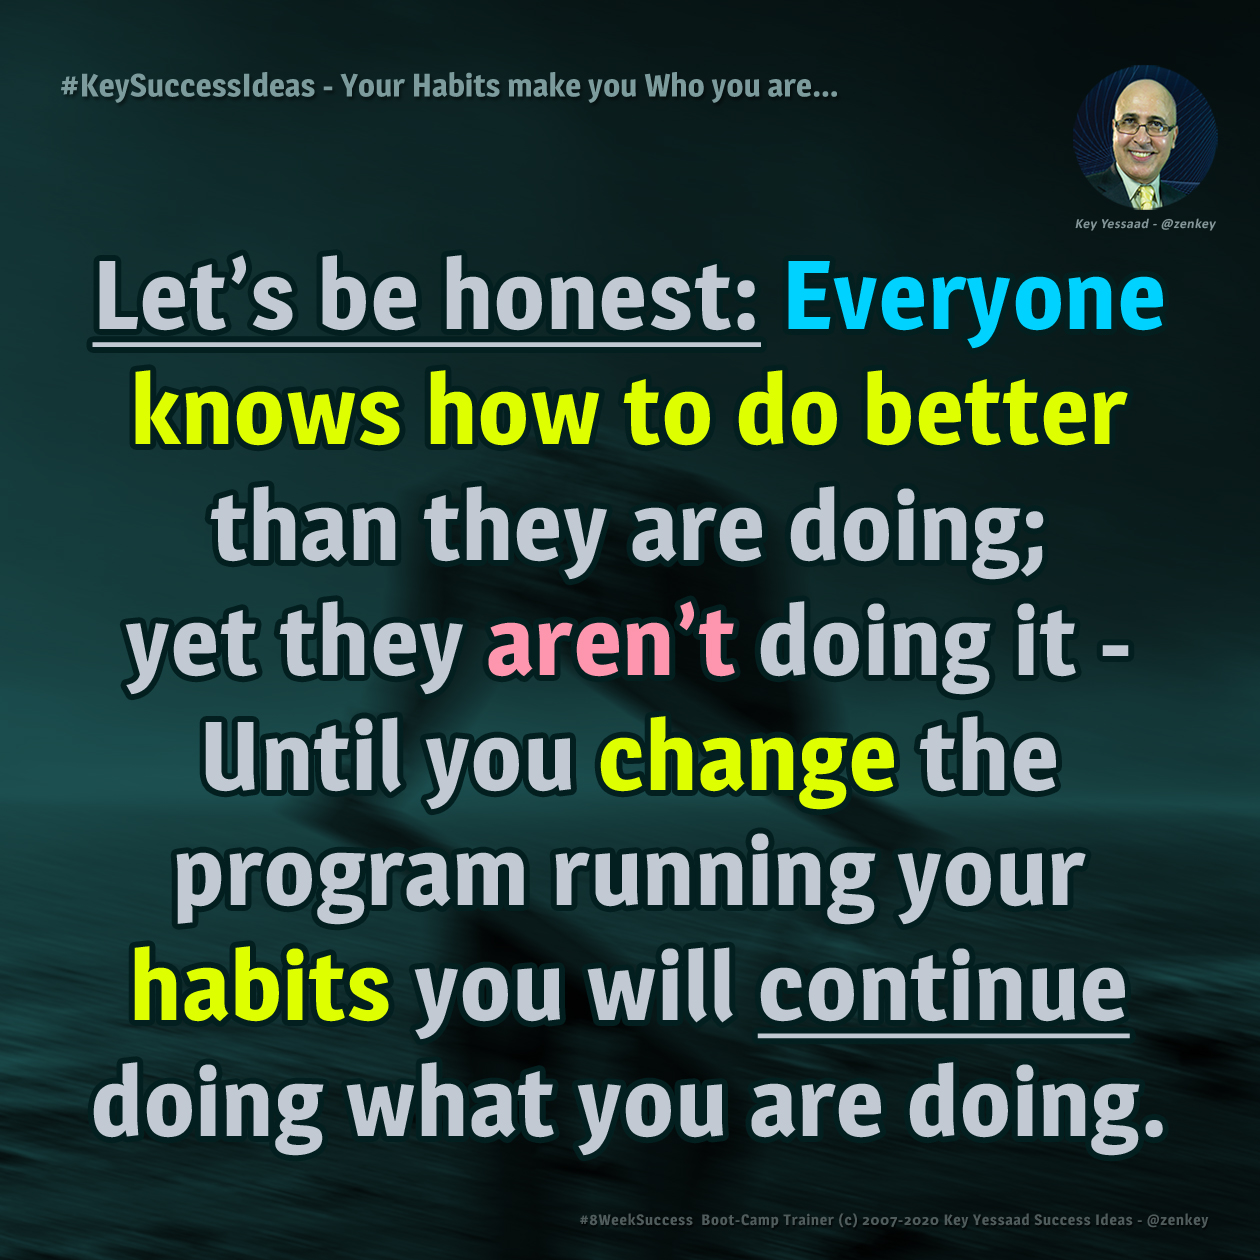 Your Habits make you Who you are?  - #KeySuccessIdeas